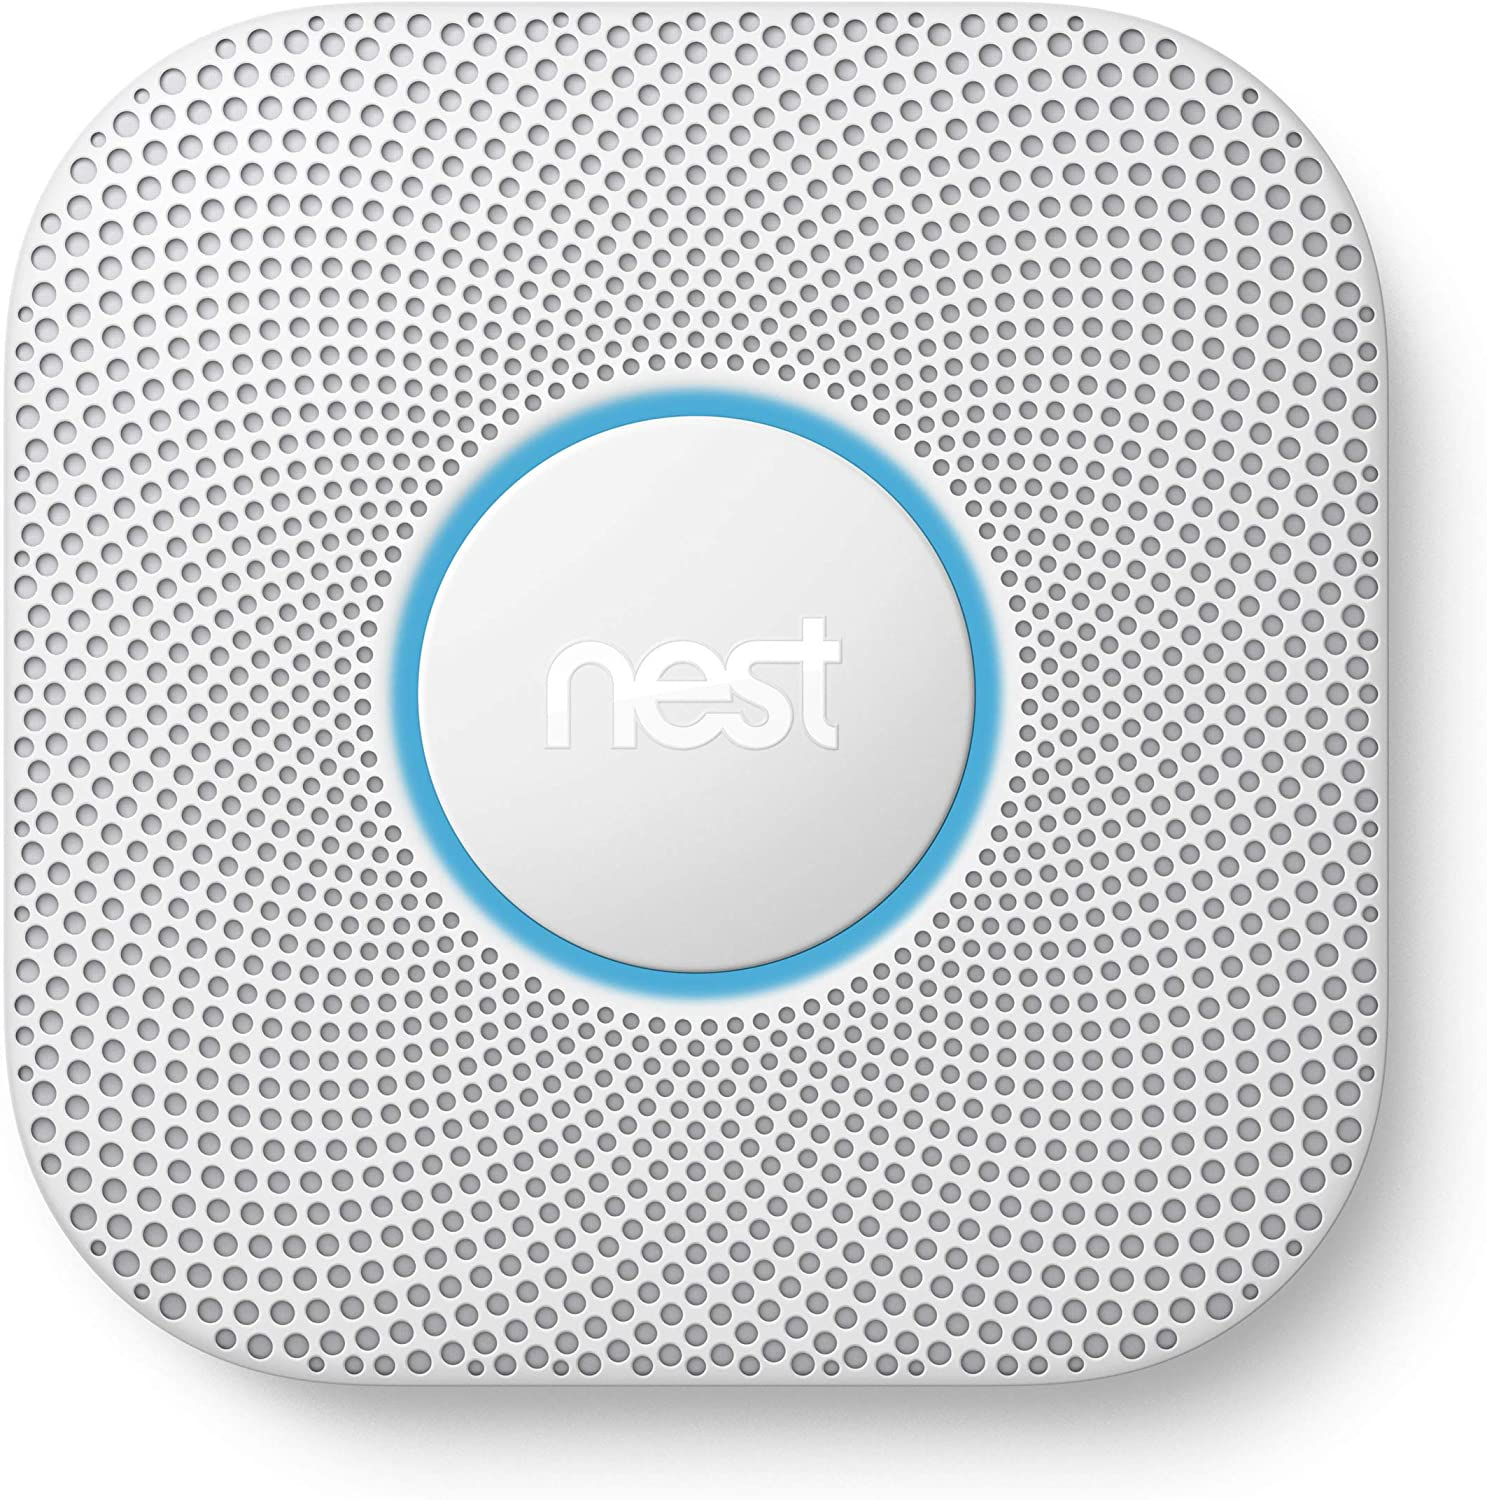 2 Pack Nest Protect Wired Smoke /& Carbon Monoxide Detector Alarm 2nd S3005PWLUS